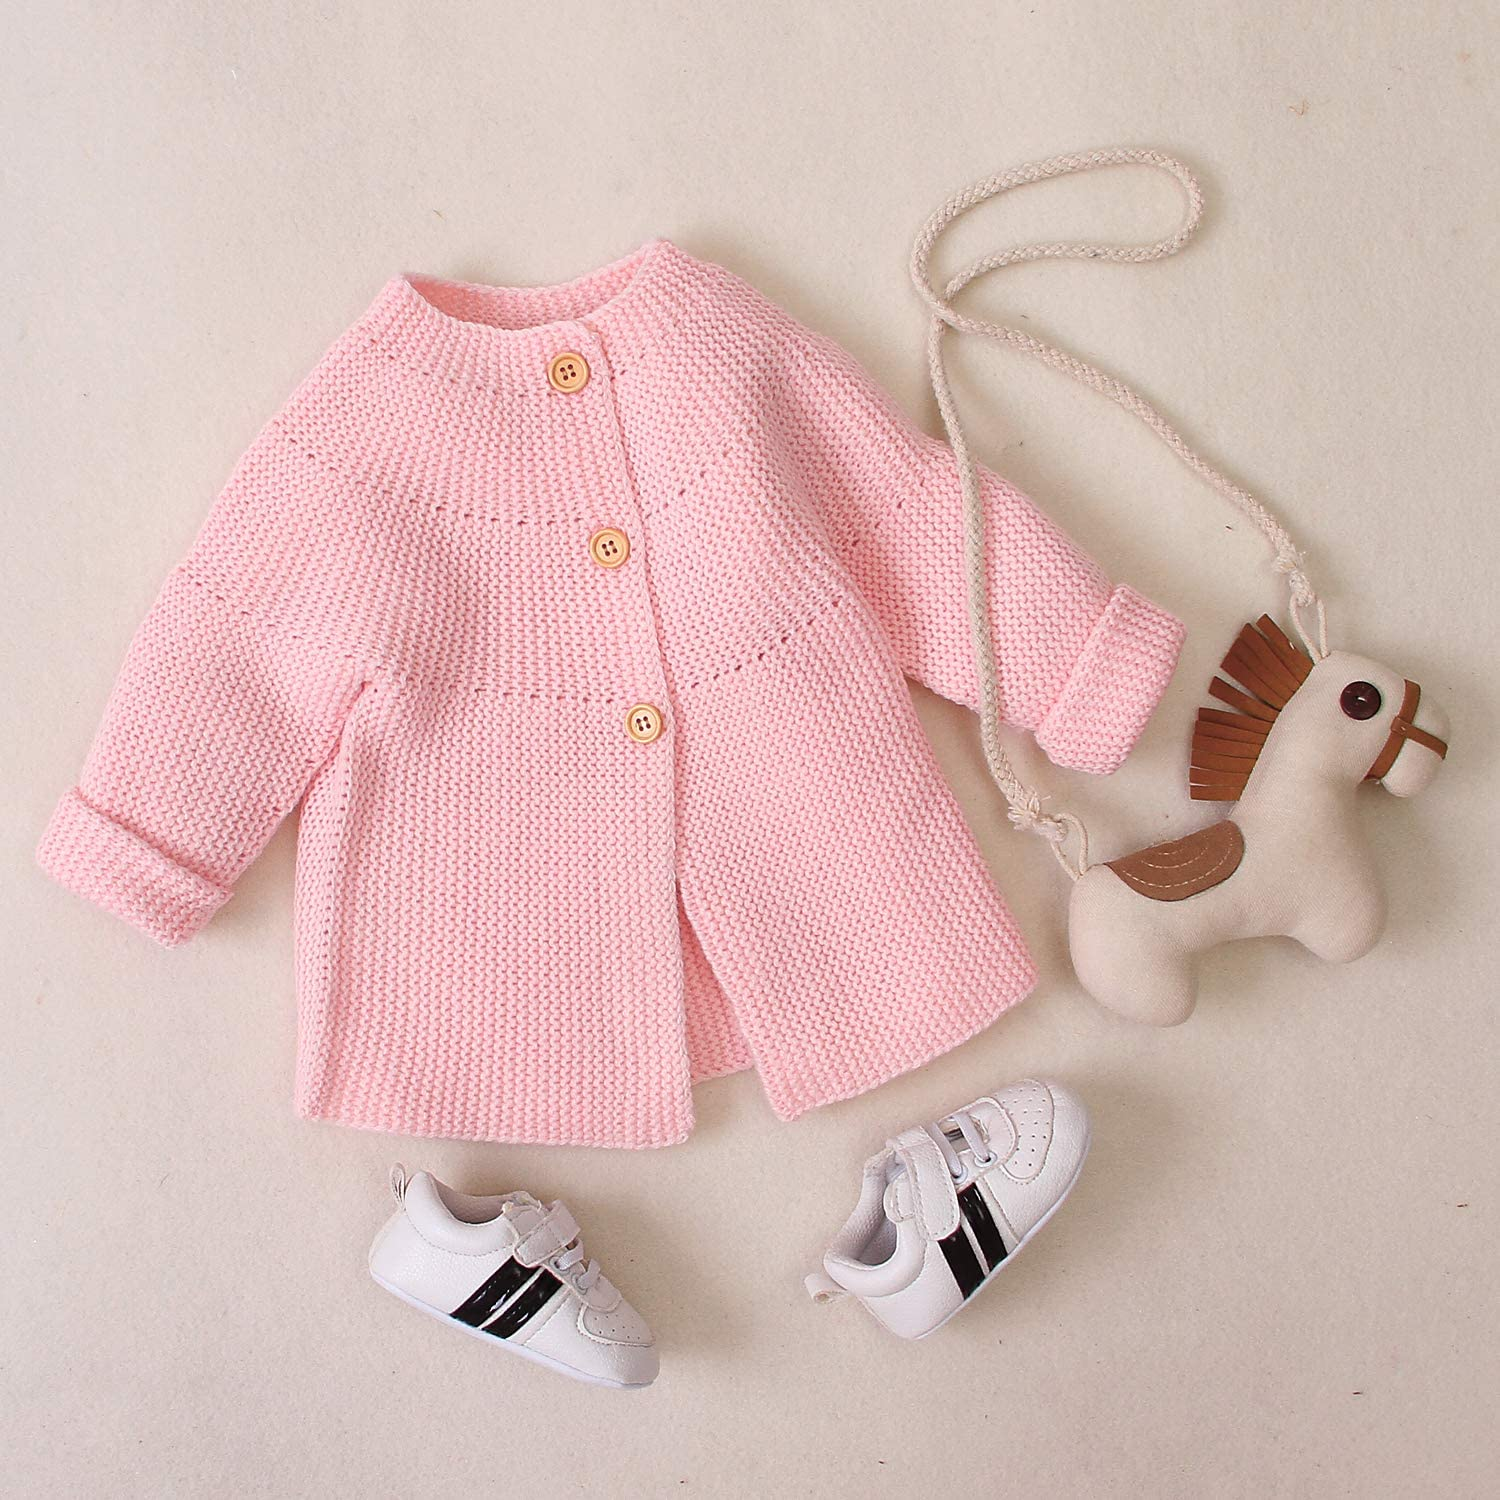 Menglo Baby Boys Girls Knit Cardigan Sweaters Newborn Baby Long Sleeve Button Down Knitted Warm Coats Outwear